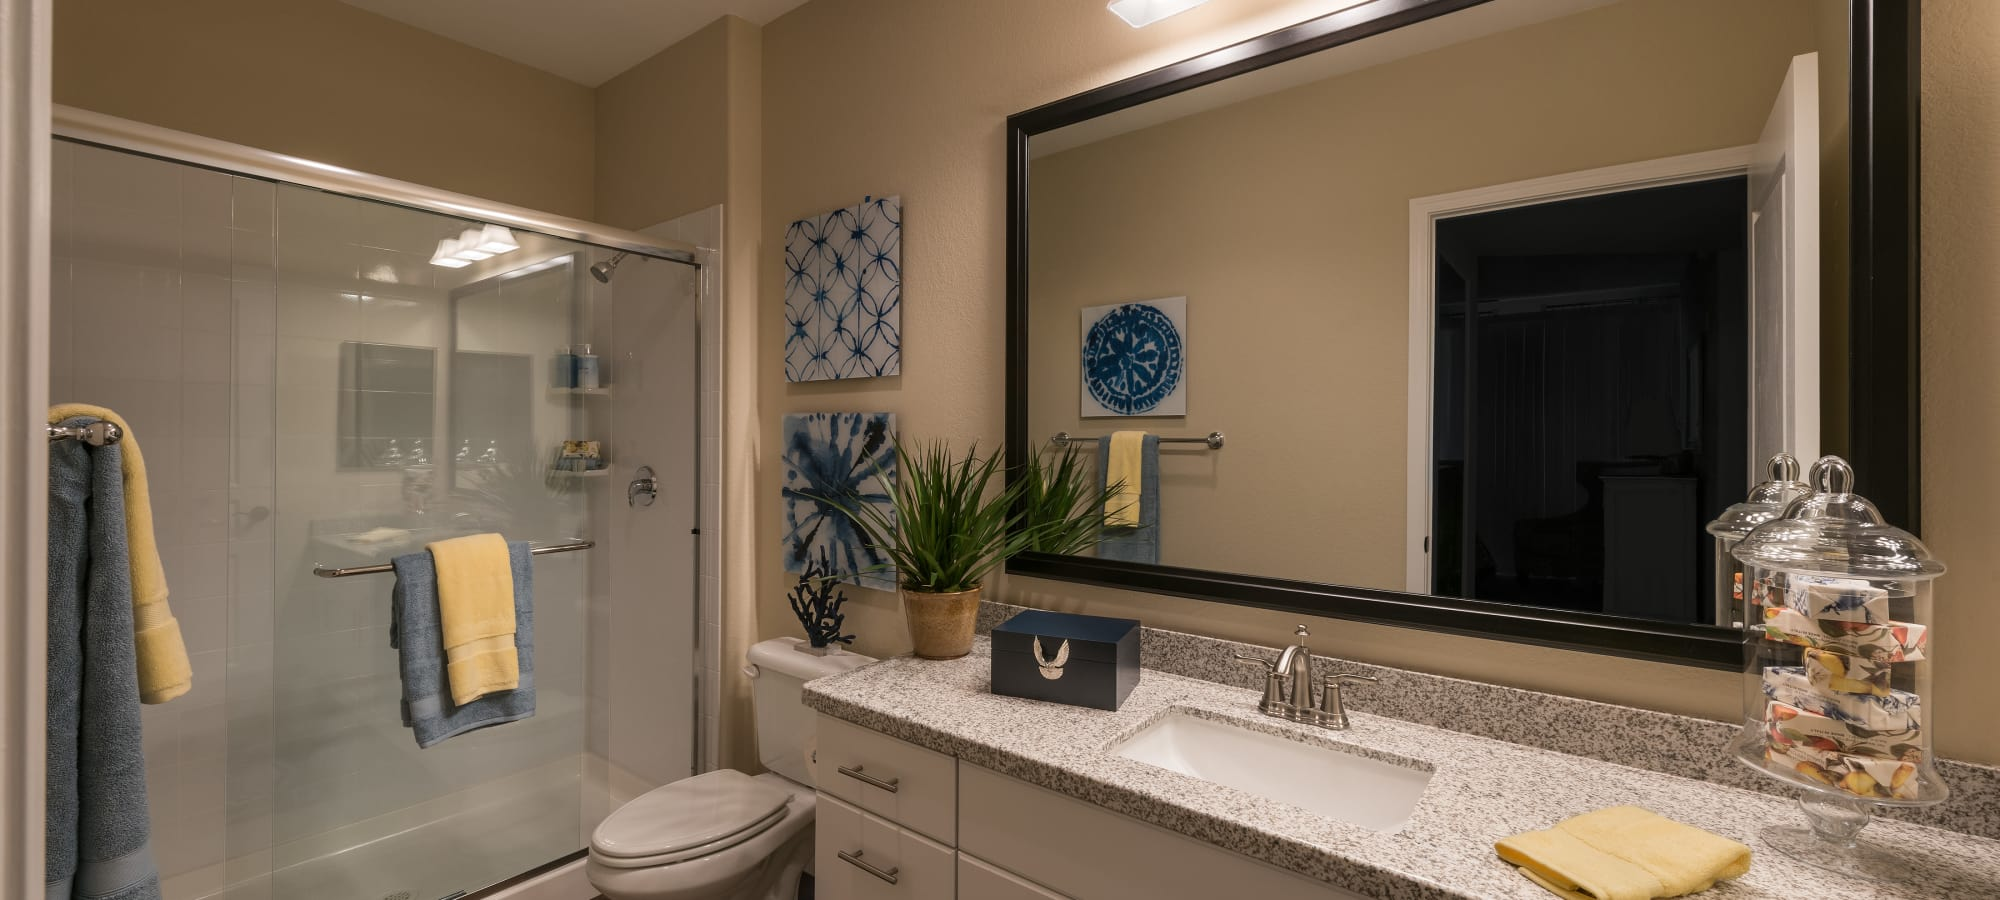 Well-lit master bathroom with granite countertop in model home at San Piedra in Mesa, Arizona